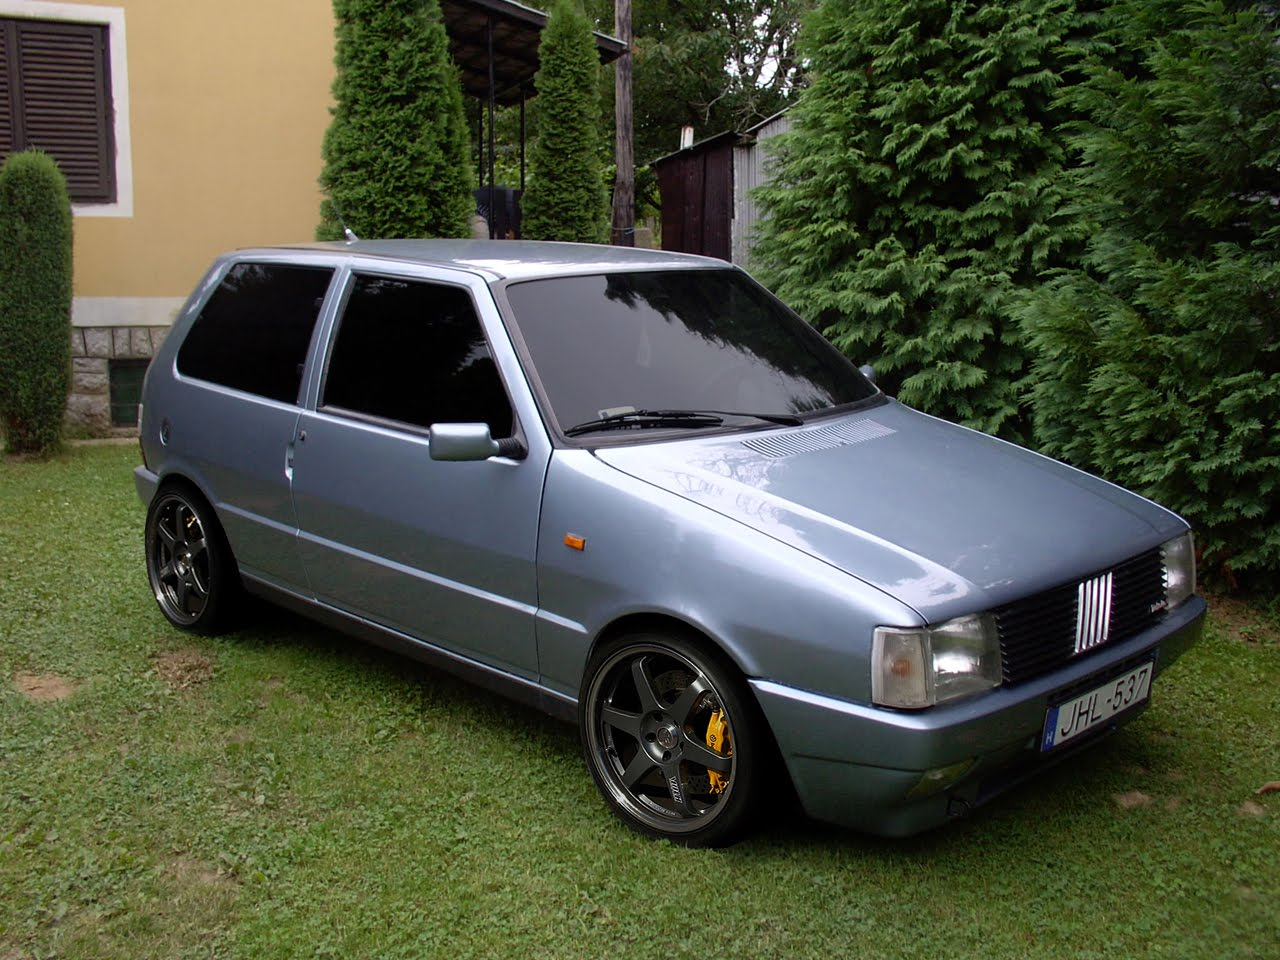 Fiat uno 1992 review amazing pictures and images look at the car fiat uno 1992 photo 1 altavistaventures Images